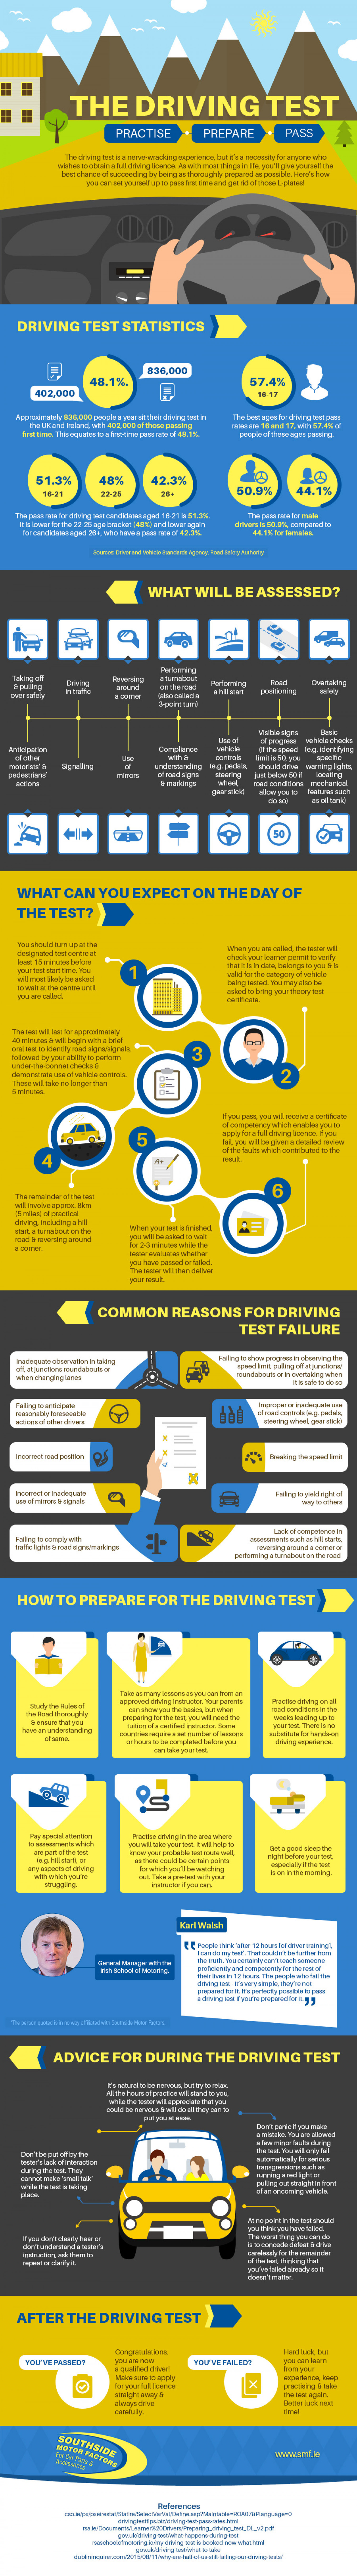 Your Driving Test: Practise, Prepare, Pass [Visual asset] Infographic